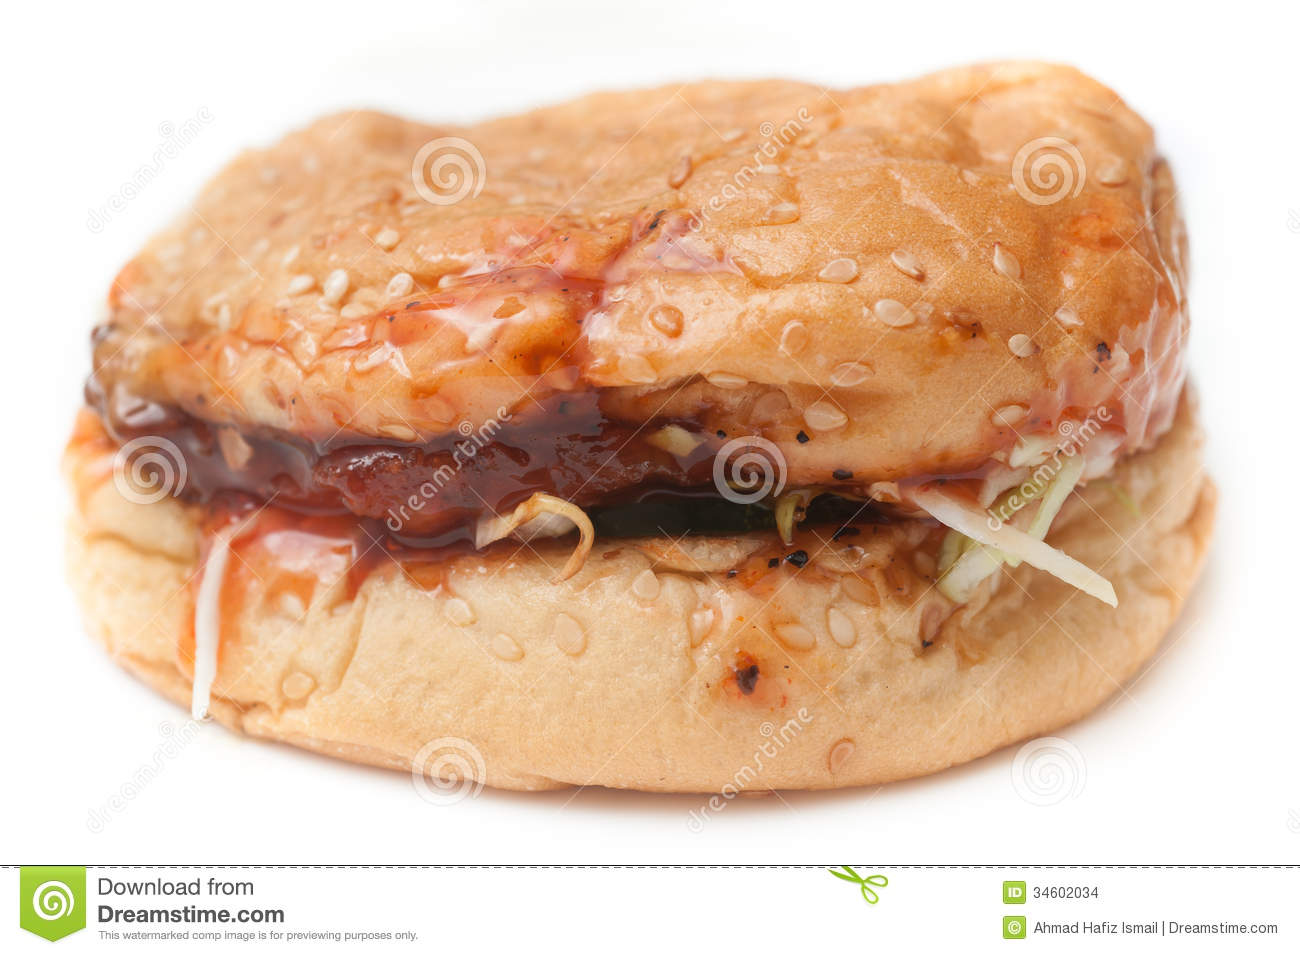 Soggy Unhealthy Homemade Burger Stock Images - Image: 34602034